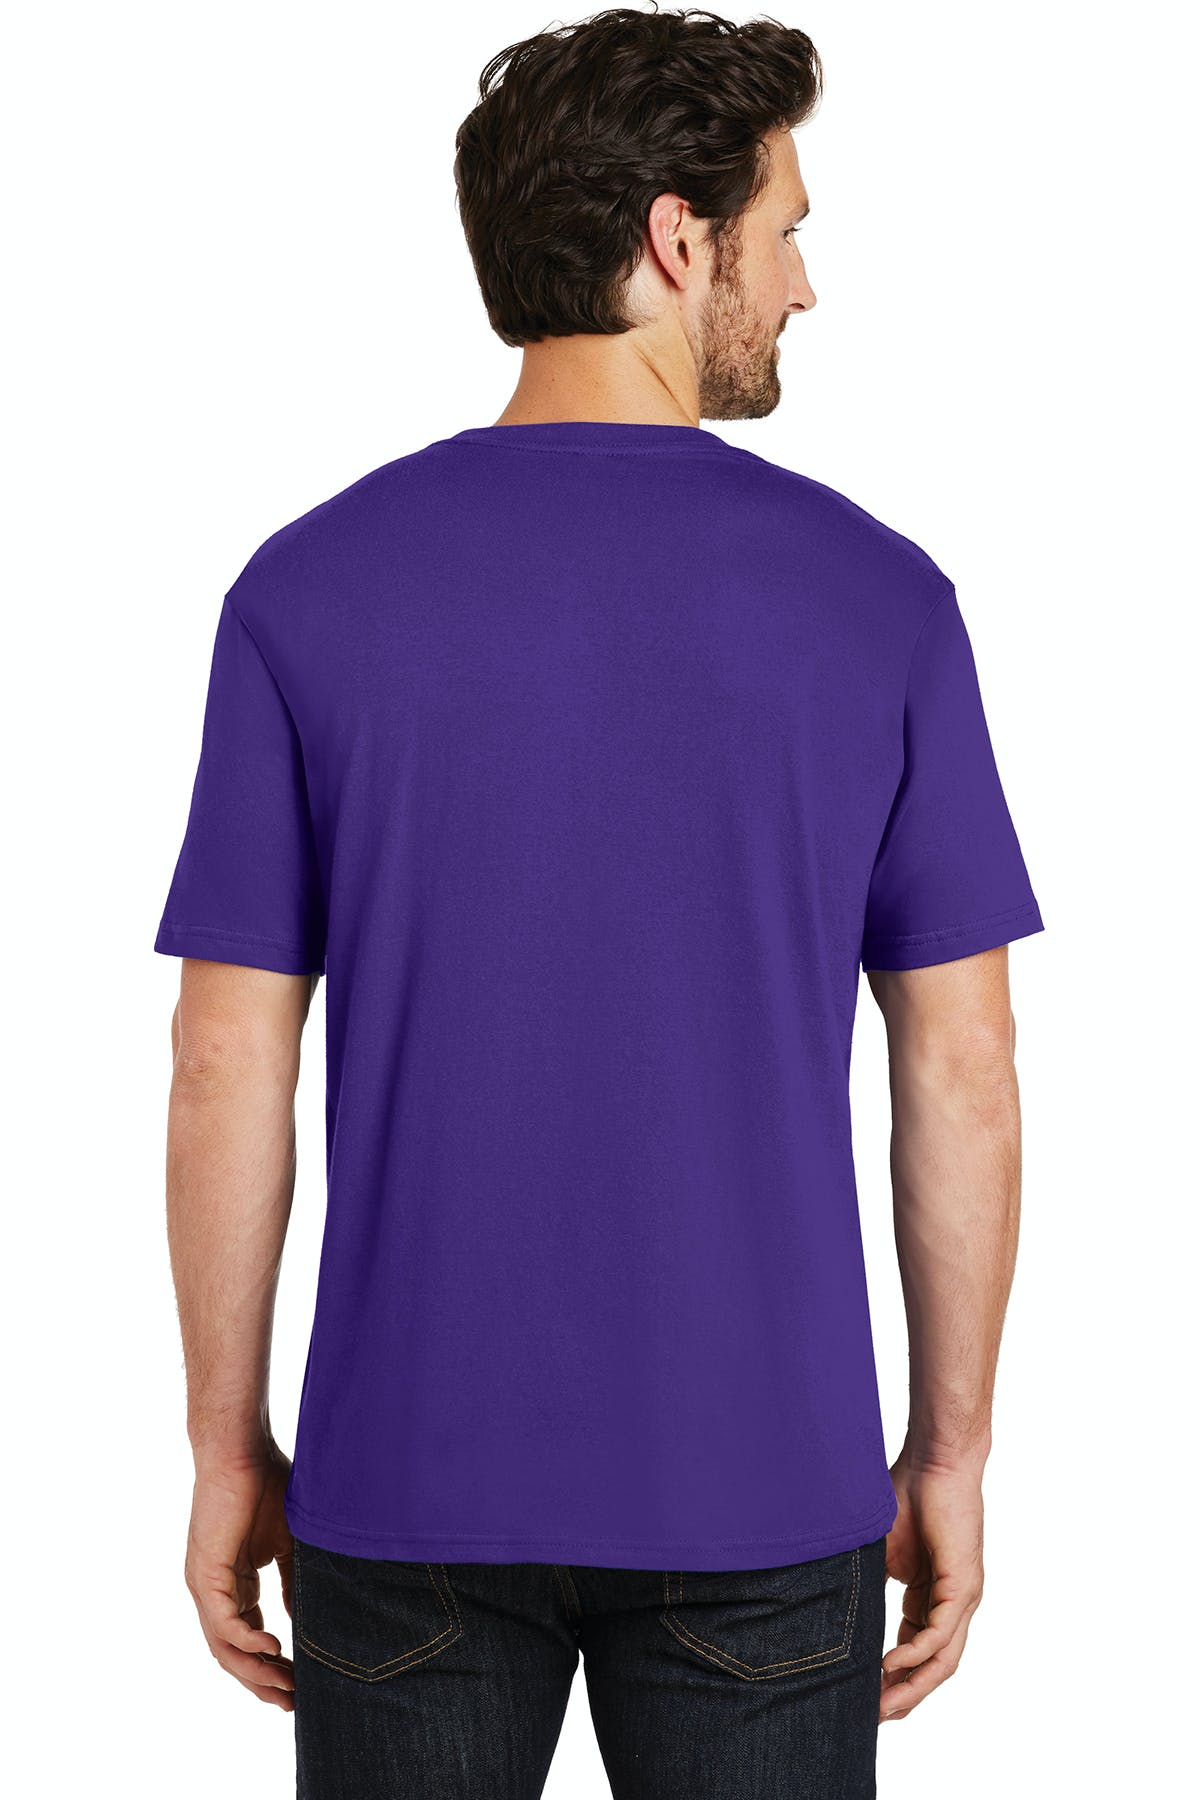 District Made® Mens Perfect Weight® Crew Tee - sold by PRINT CITY GRAPHICS, INC